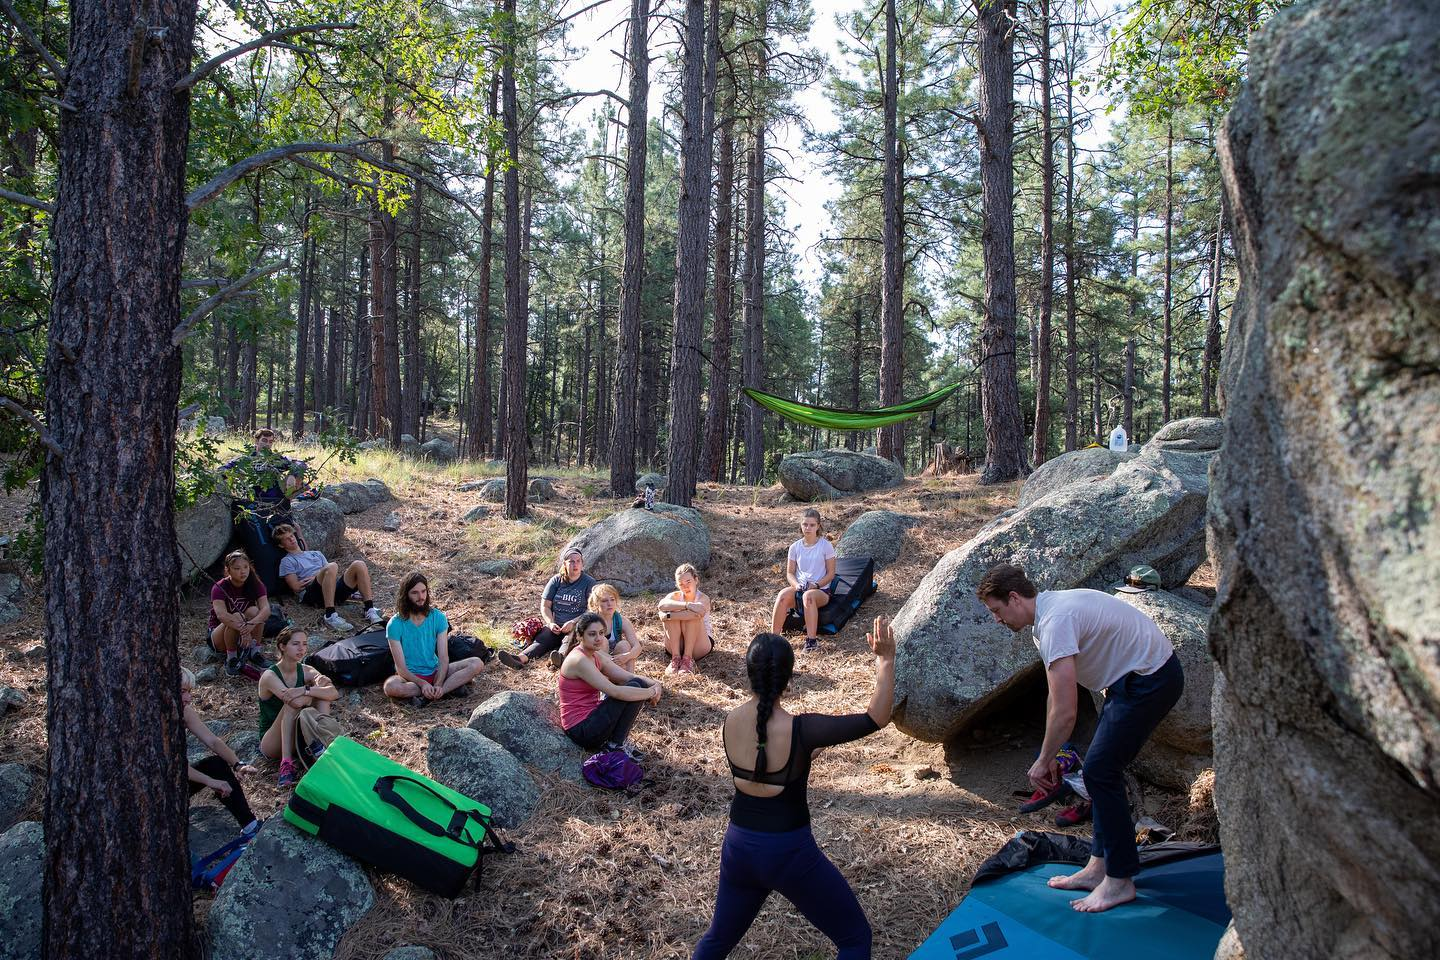 Students in athletic gear sit, watching as instructor shows bouldering techniques in the woods. There is a hammock in the background.